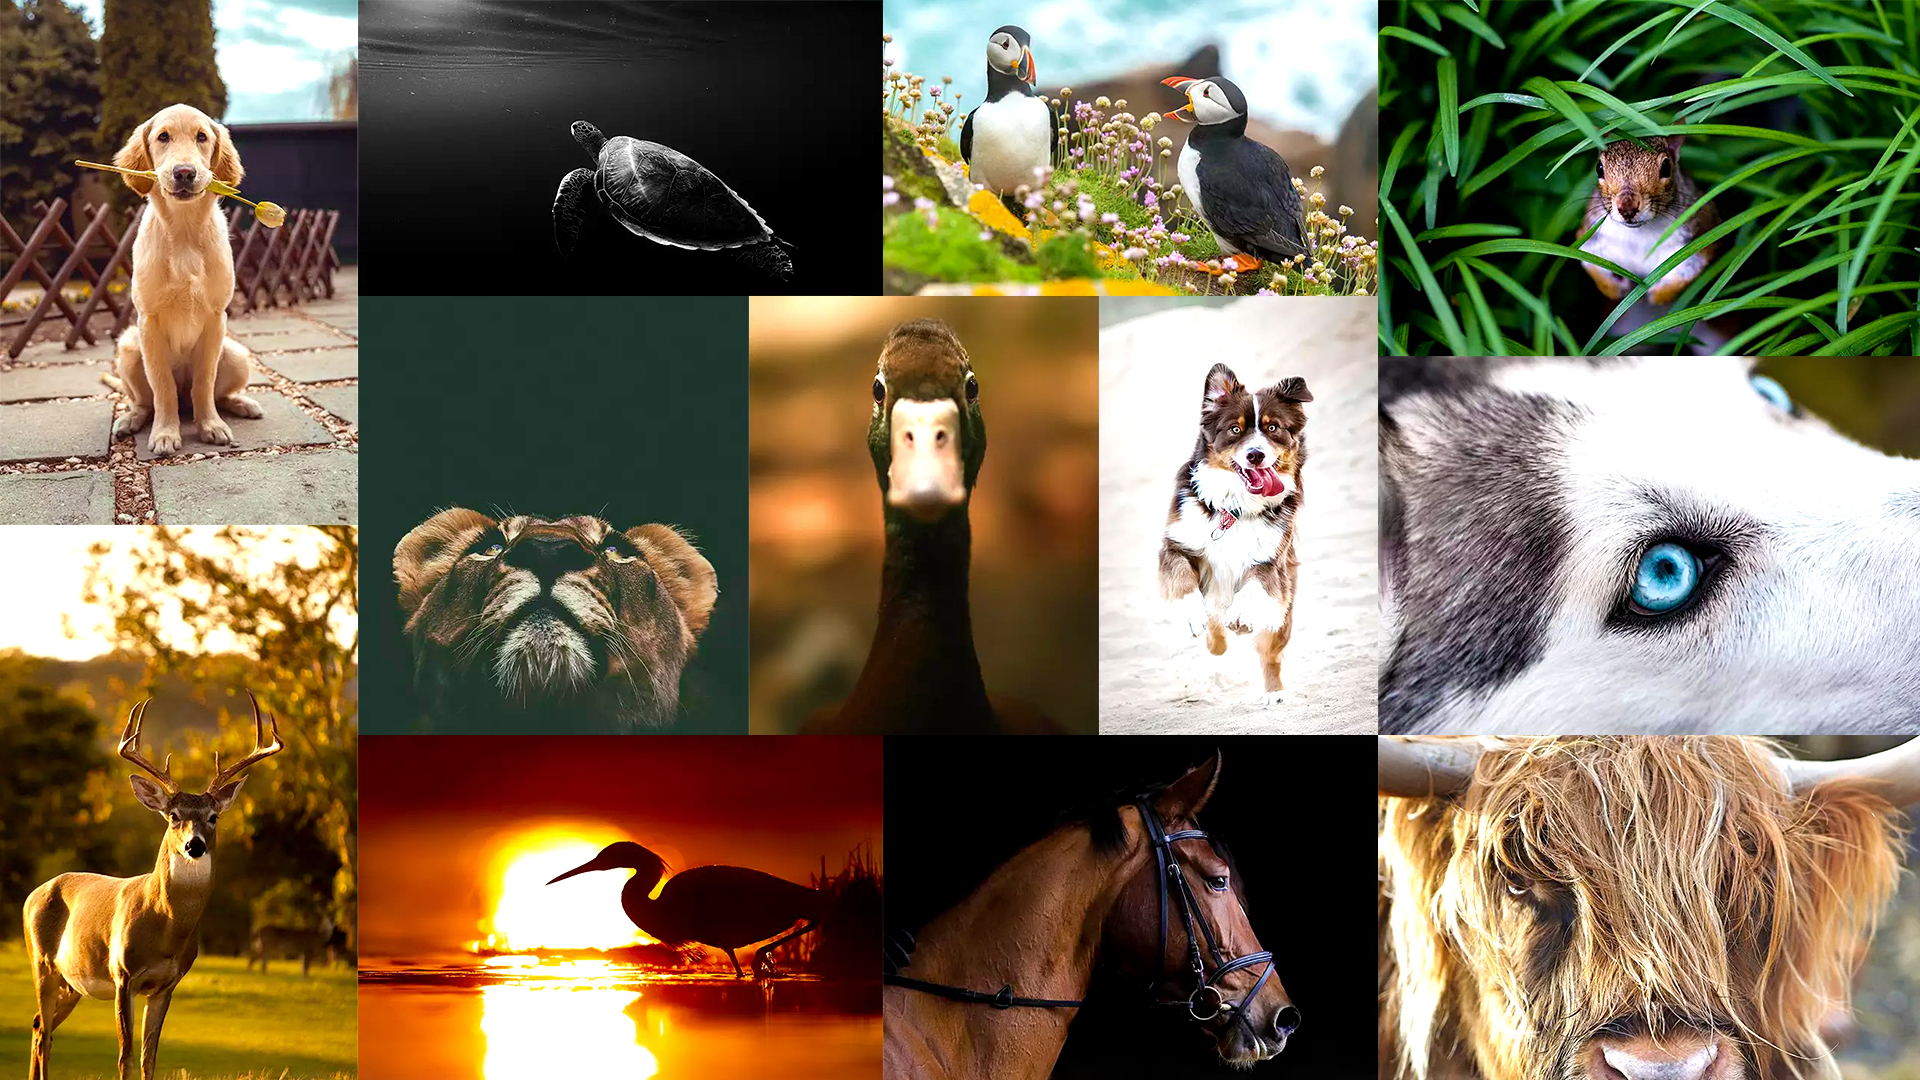 30 Unique Animal Photography Examples To Inspire You